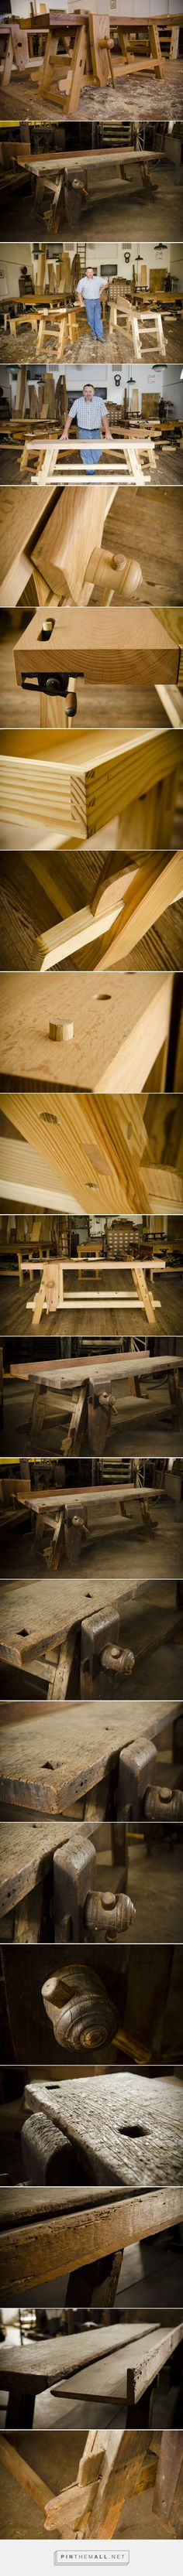 The Portable Moravian Workbench at The Woodwright's School - by WoodAndShop @ LumberJocks.com ~ woodworking community - created via http://pinthemall.net